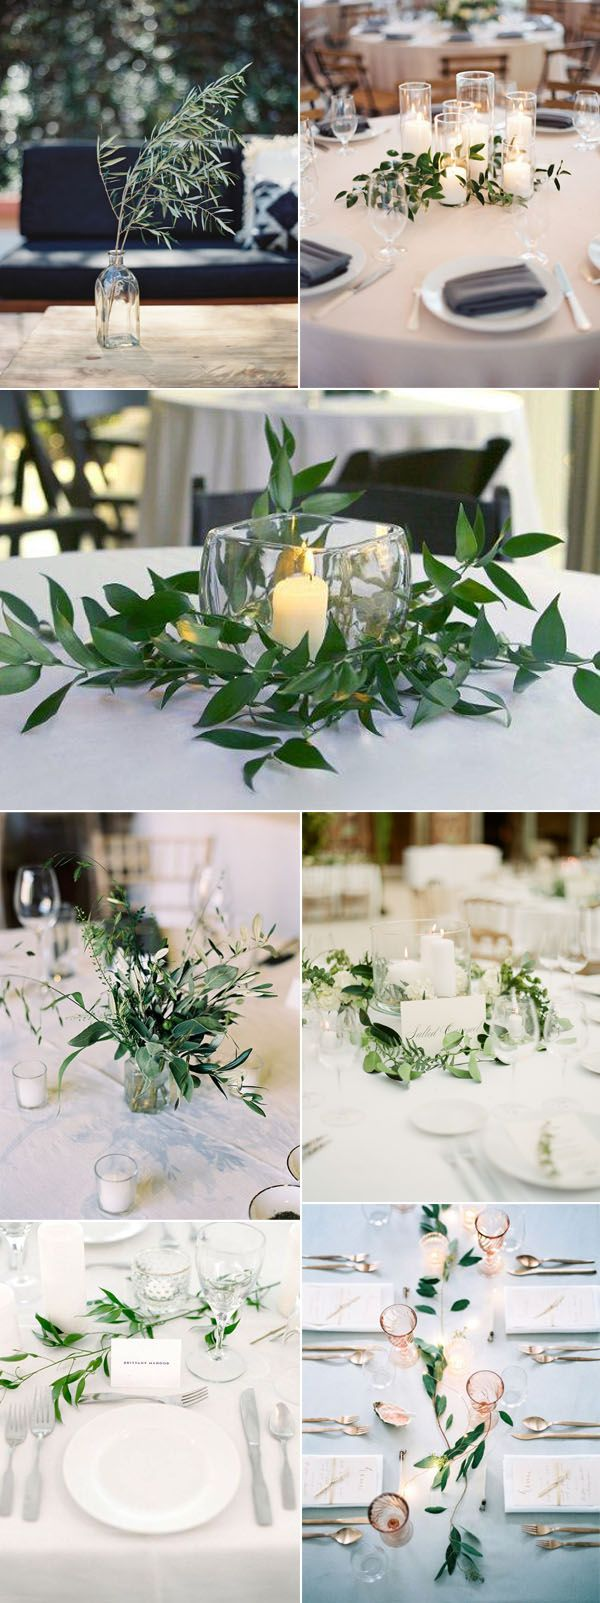 Table Centerpieces Ideas For Wedding Reception wedding centerpiece ideas cheap wedding centerpiece inexpensive weddings Best 25 Wedding Table Decorations Ideas On Pinterest